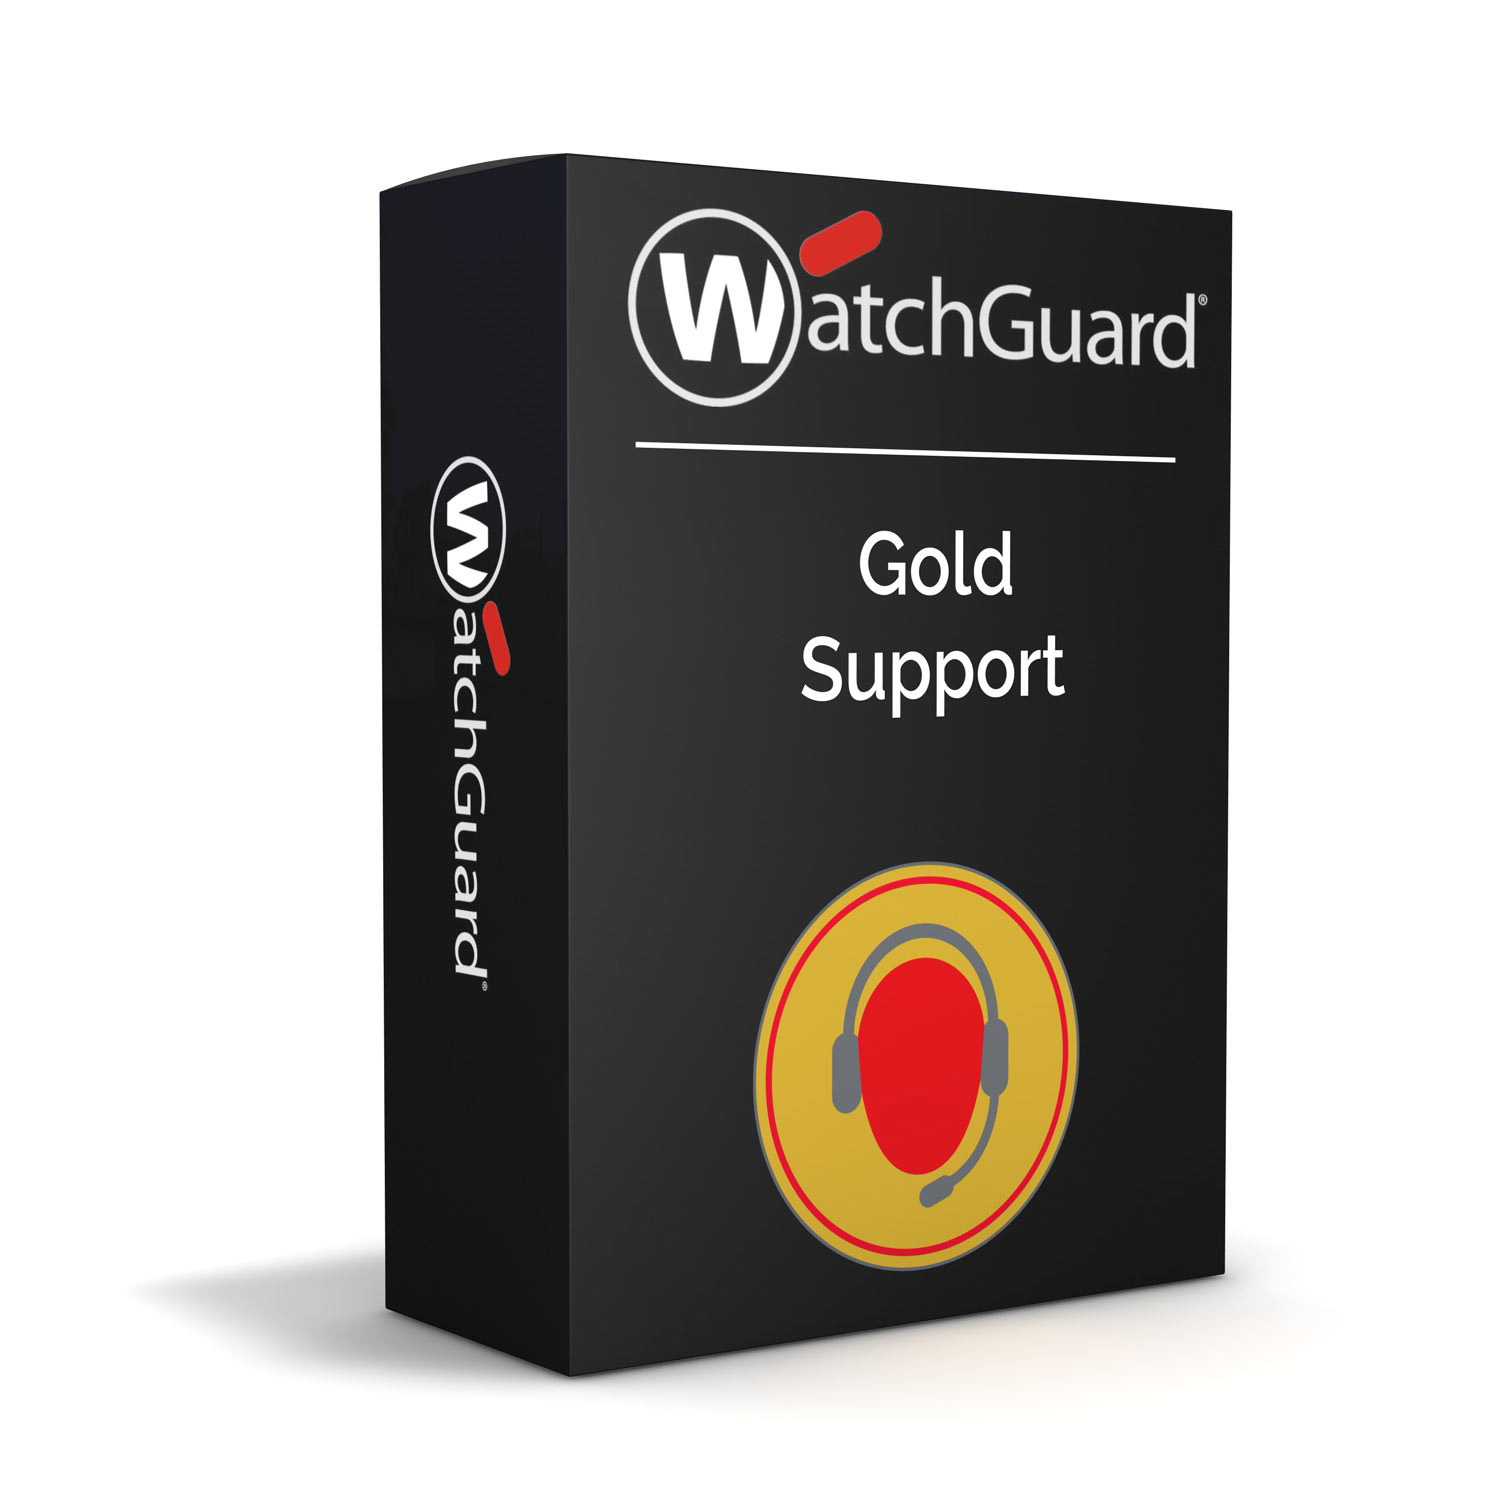 WatchGuard Gold Support Renewal/Upgrade 3-yr for Firebox T55